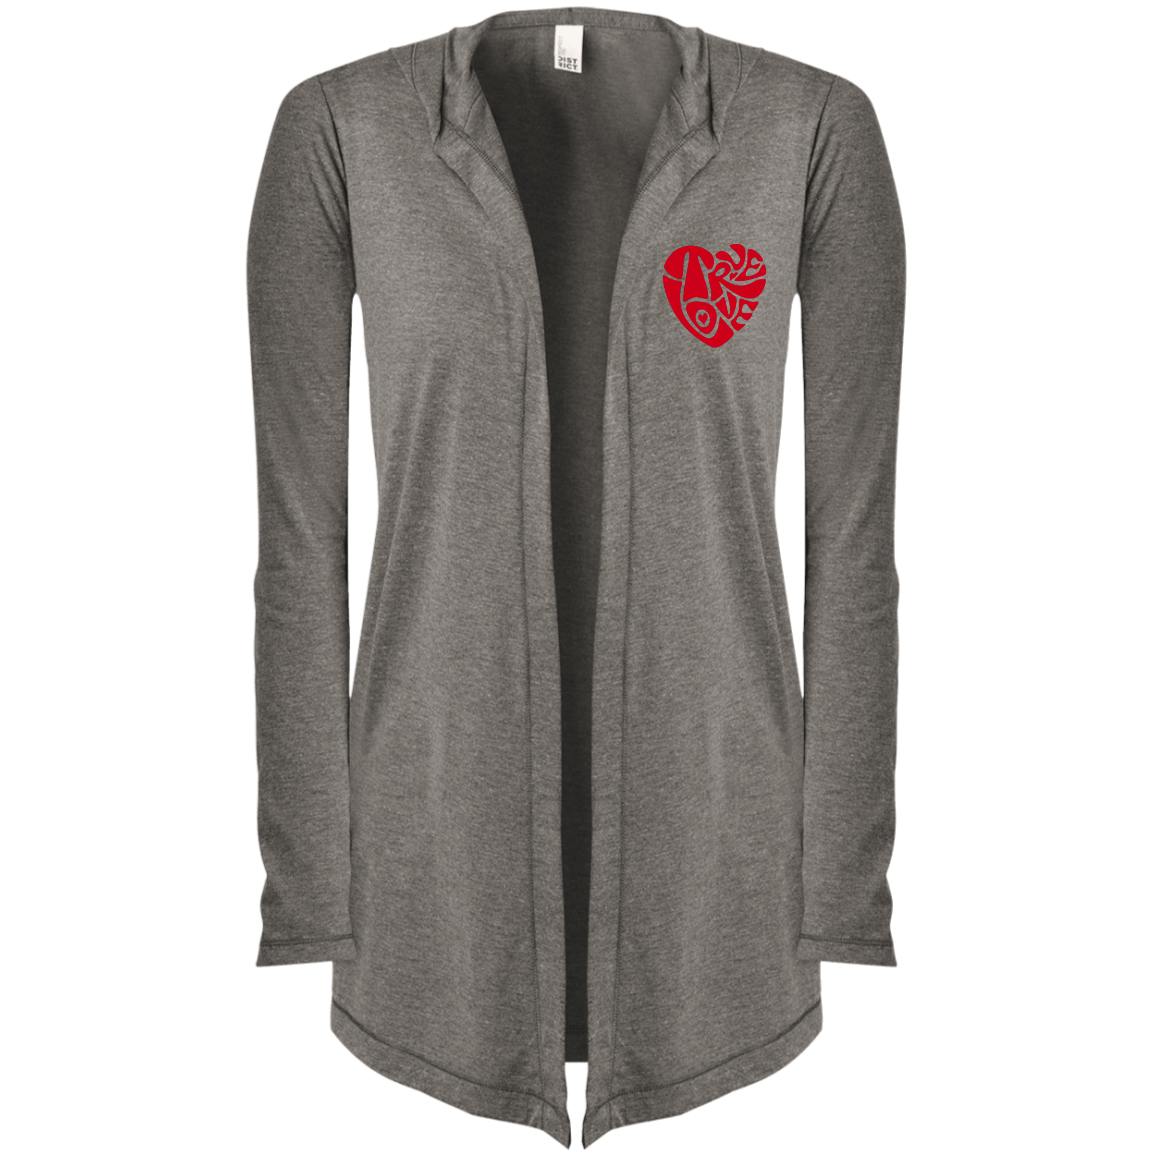 TRUE LOVE by Wisam Women's Hooded Cardigan - SW@gSpot